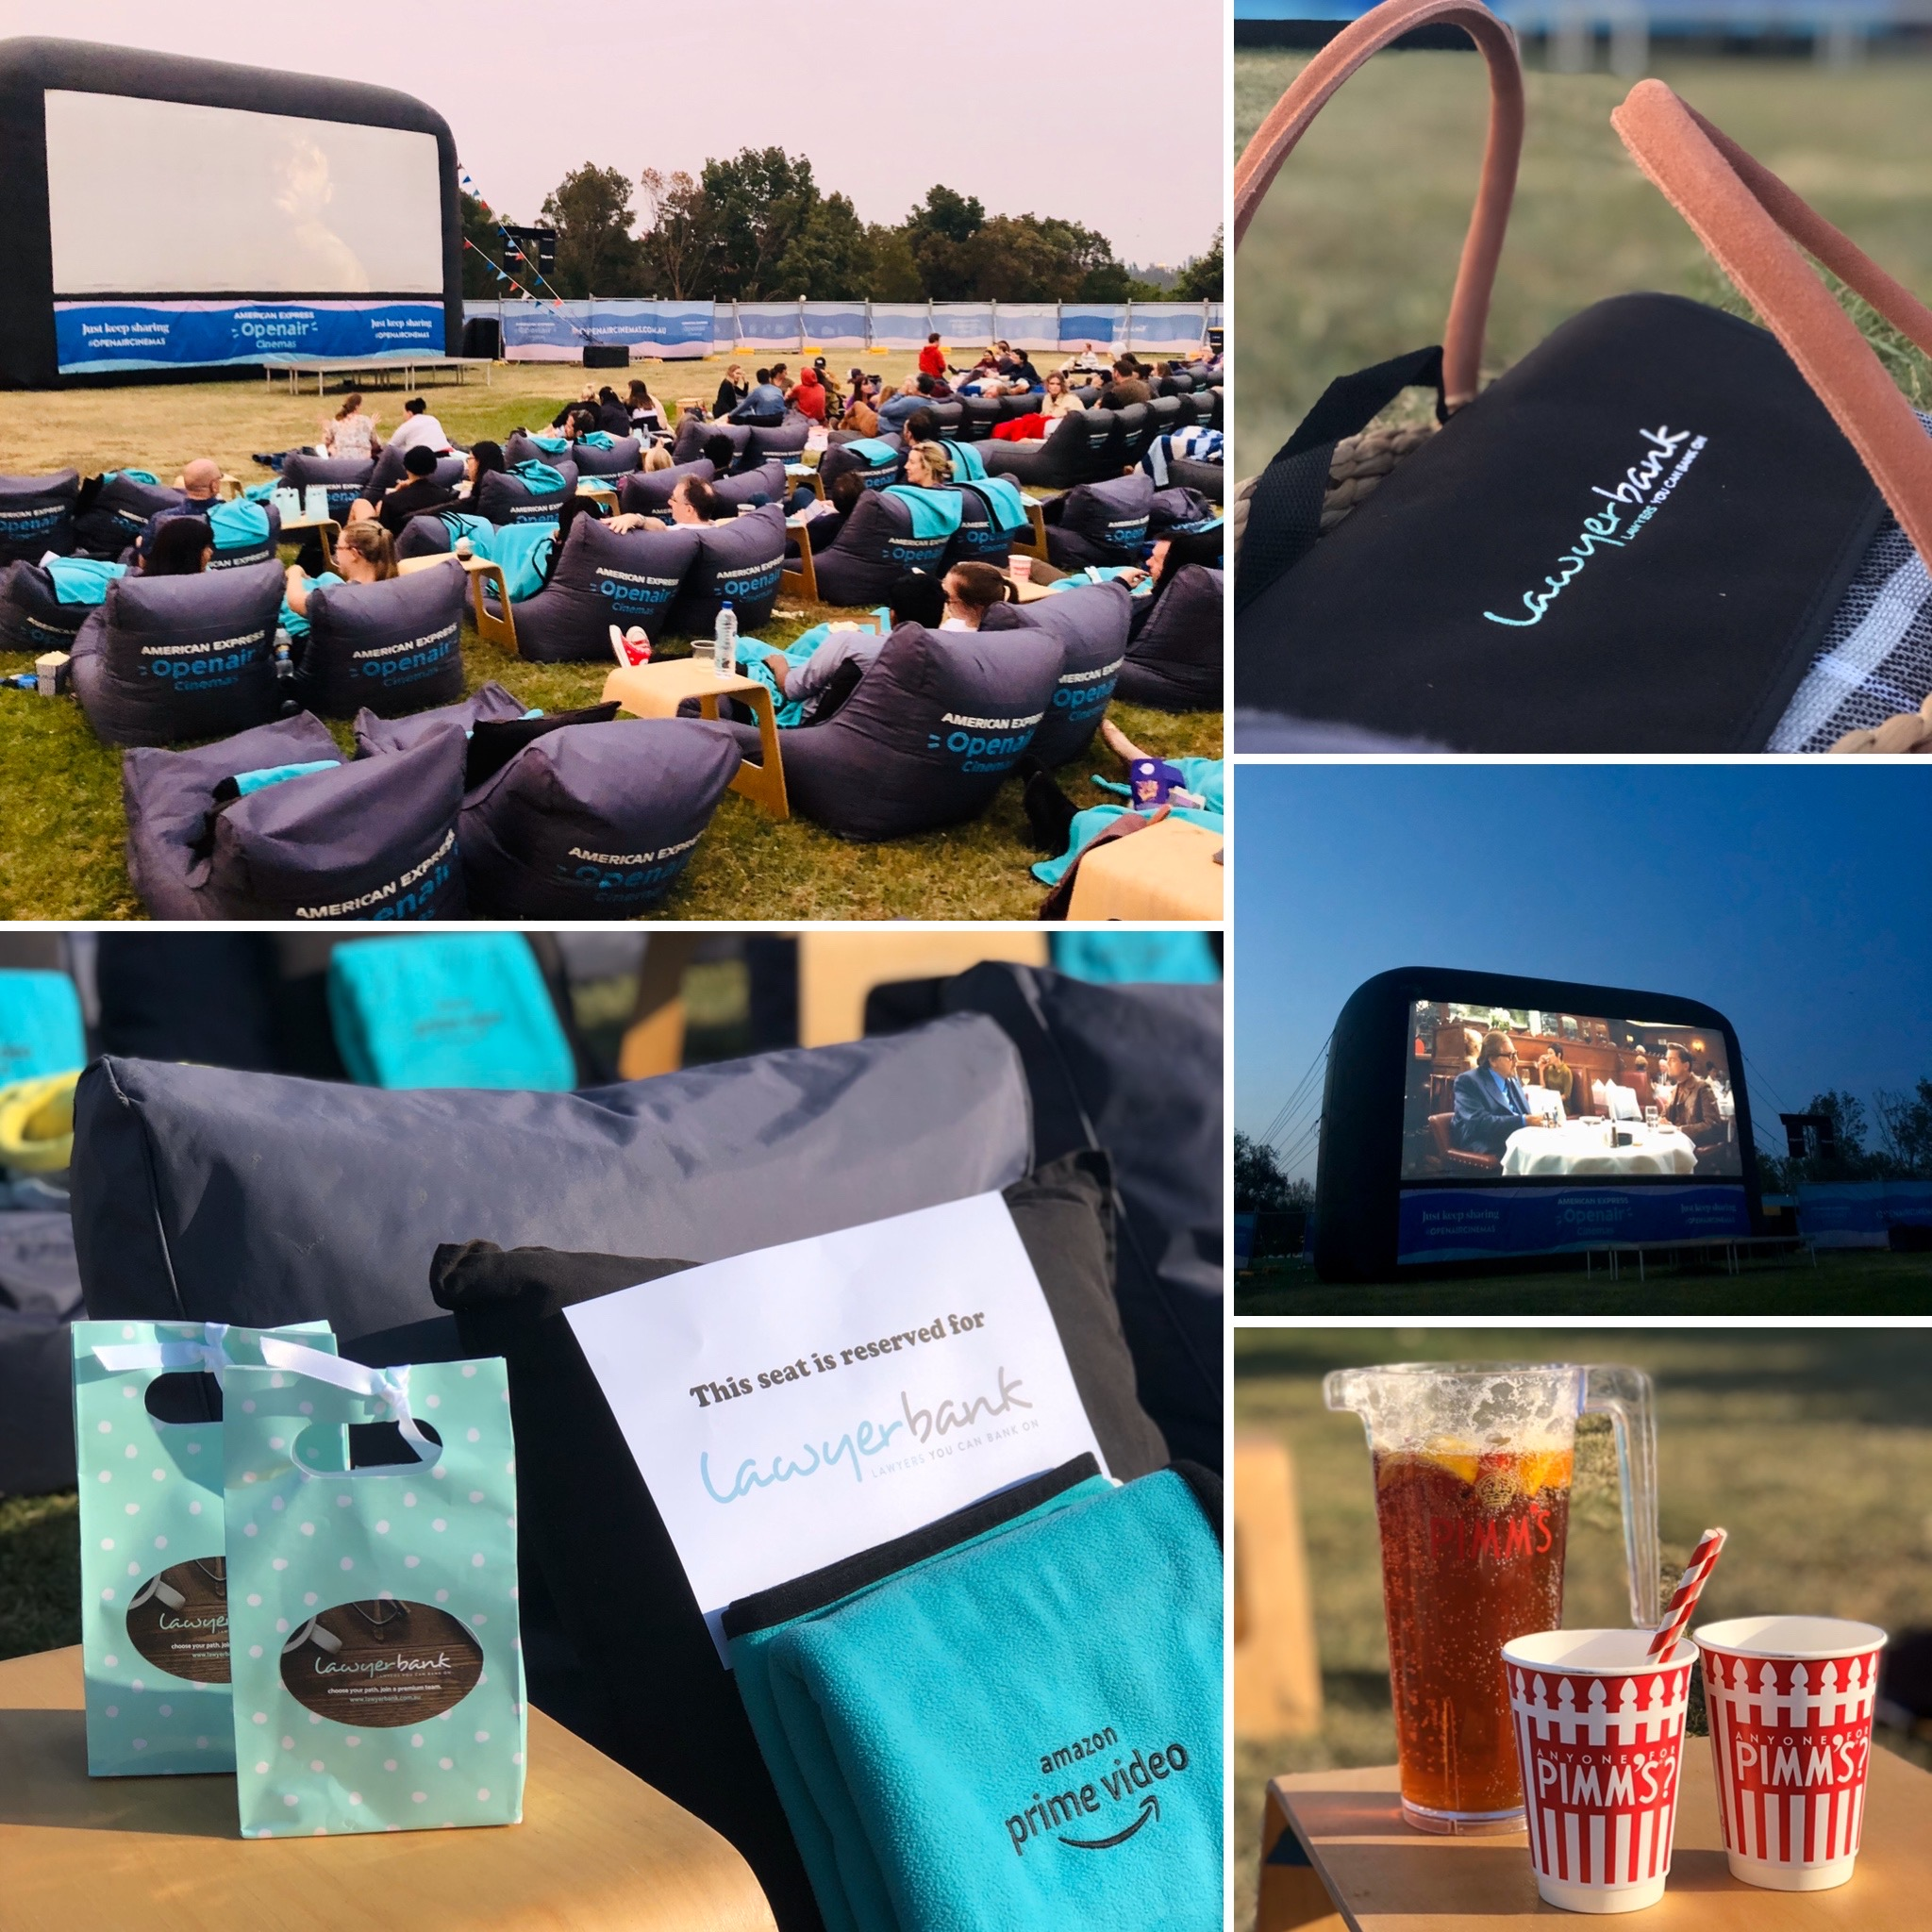 Welcoming in 2020 with Outdoor Movie Sessions